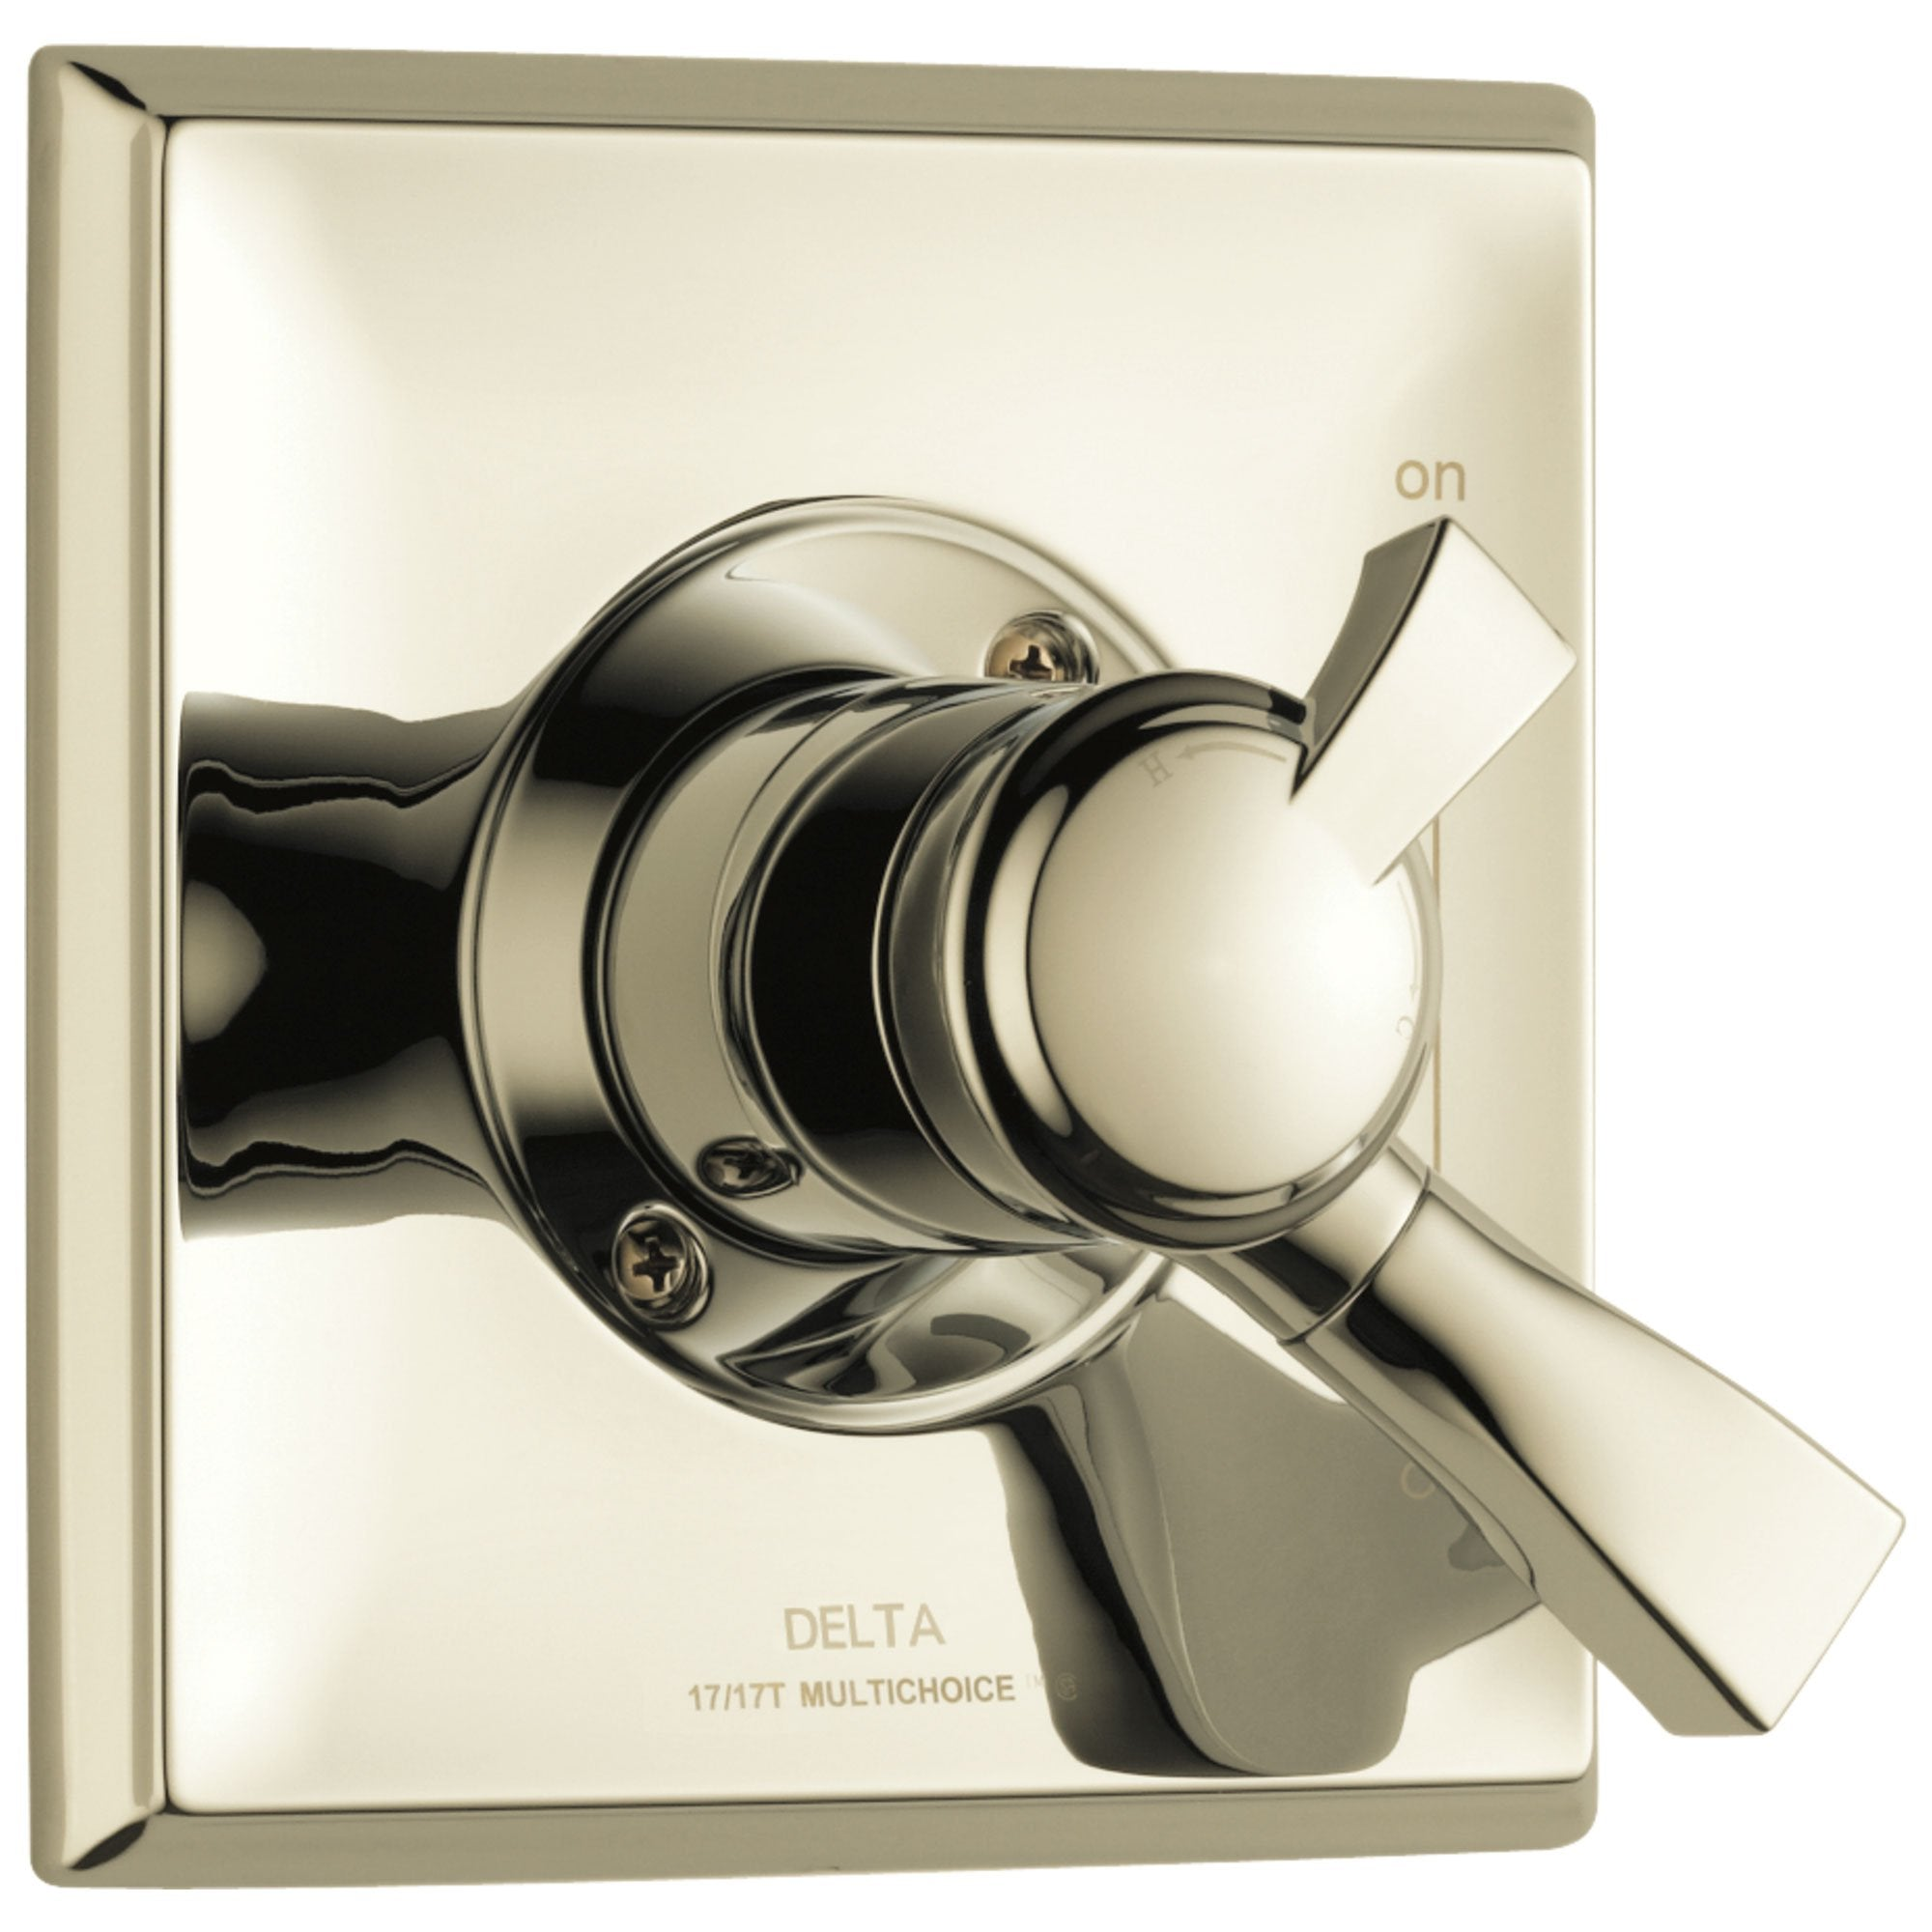 Delta Dryden Collection Polished Nickel Monitor 17 Series Dual Temp and Pressure Shower Faucet Control Valve Only Includes Rough Valve without Stops D2359V